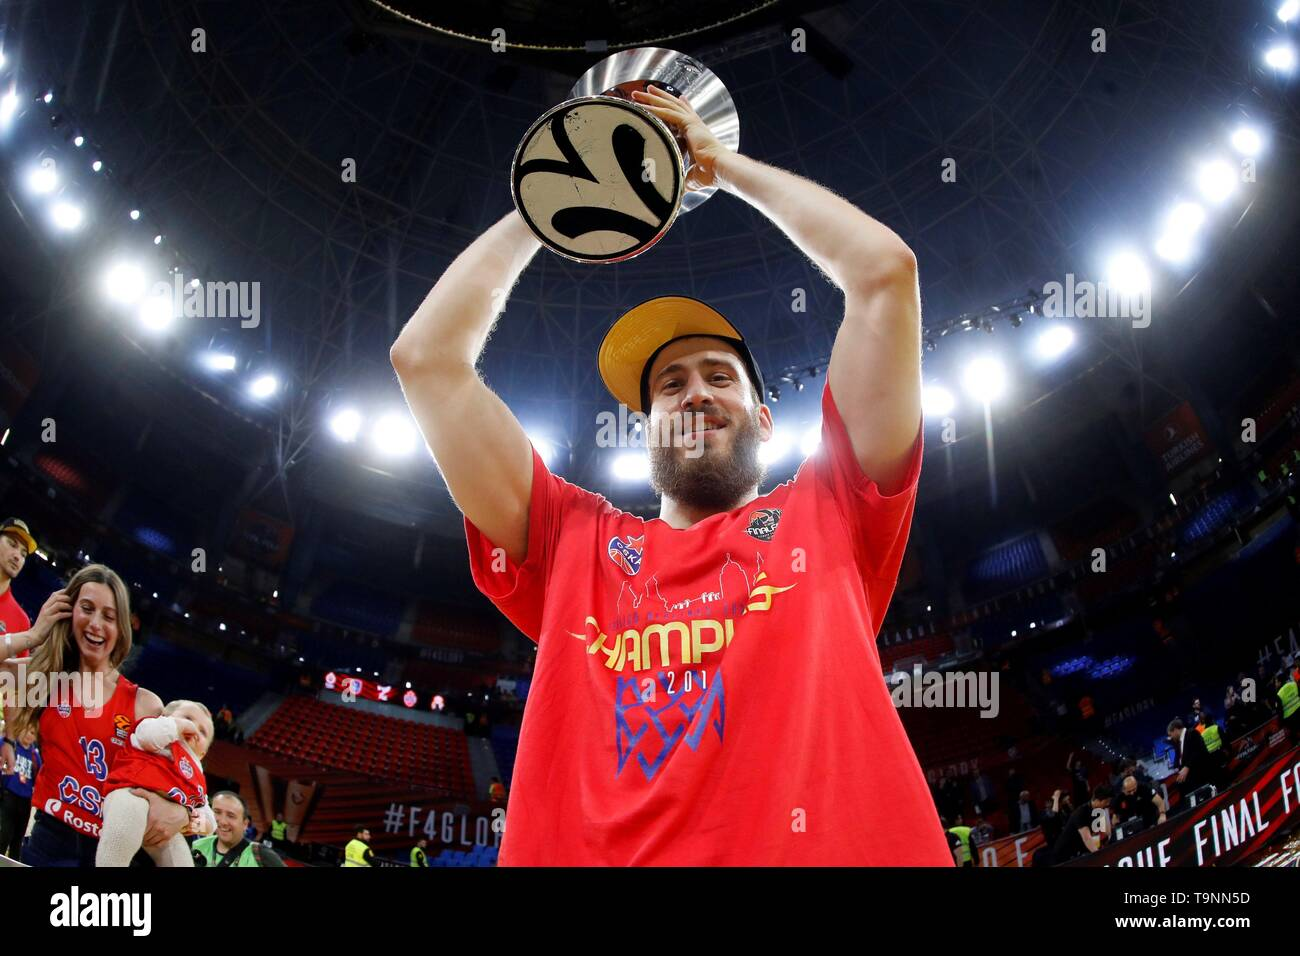 749d76b1b8d CSKA Moscow's Spanish player Sergio Rodriguez holds the trophy after  defeating Anadolu Efes team in the ...